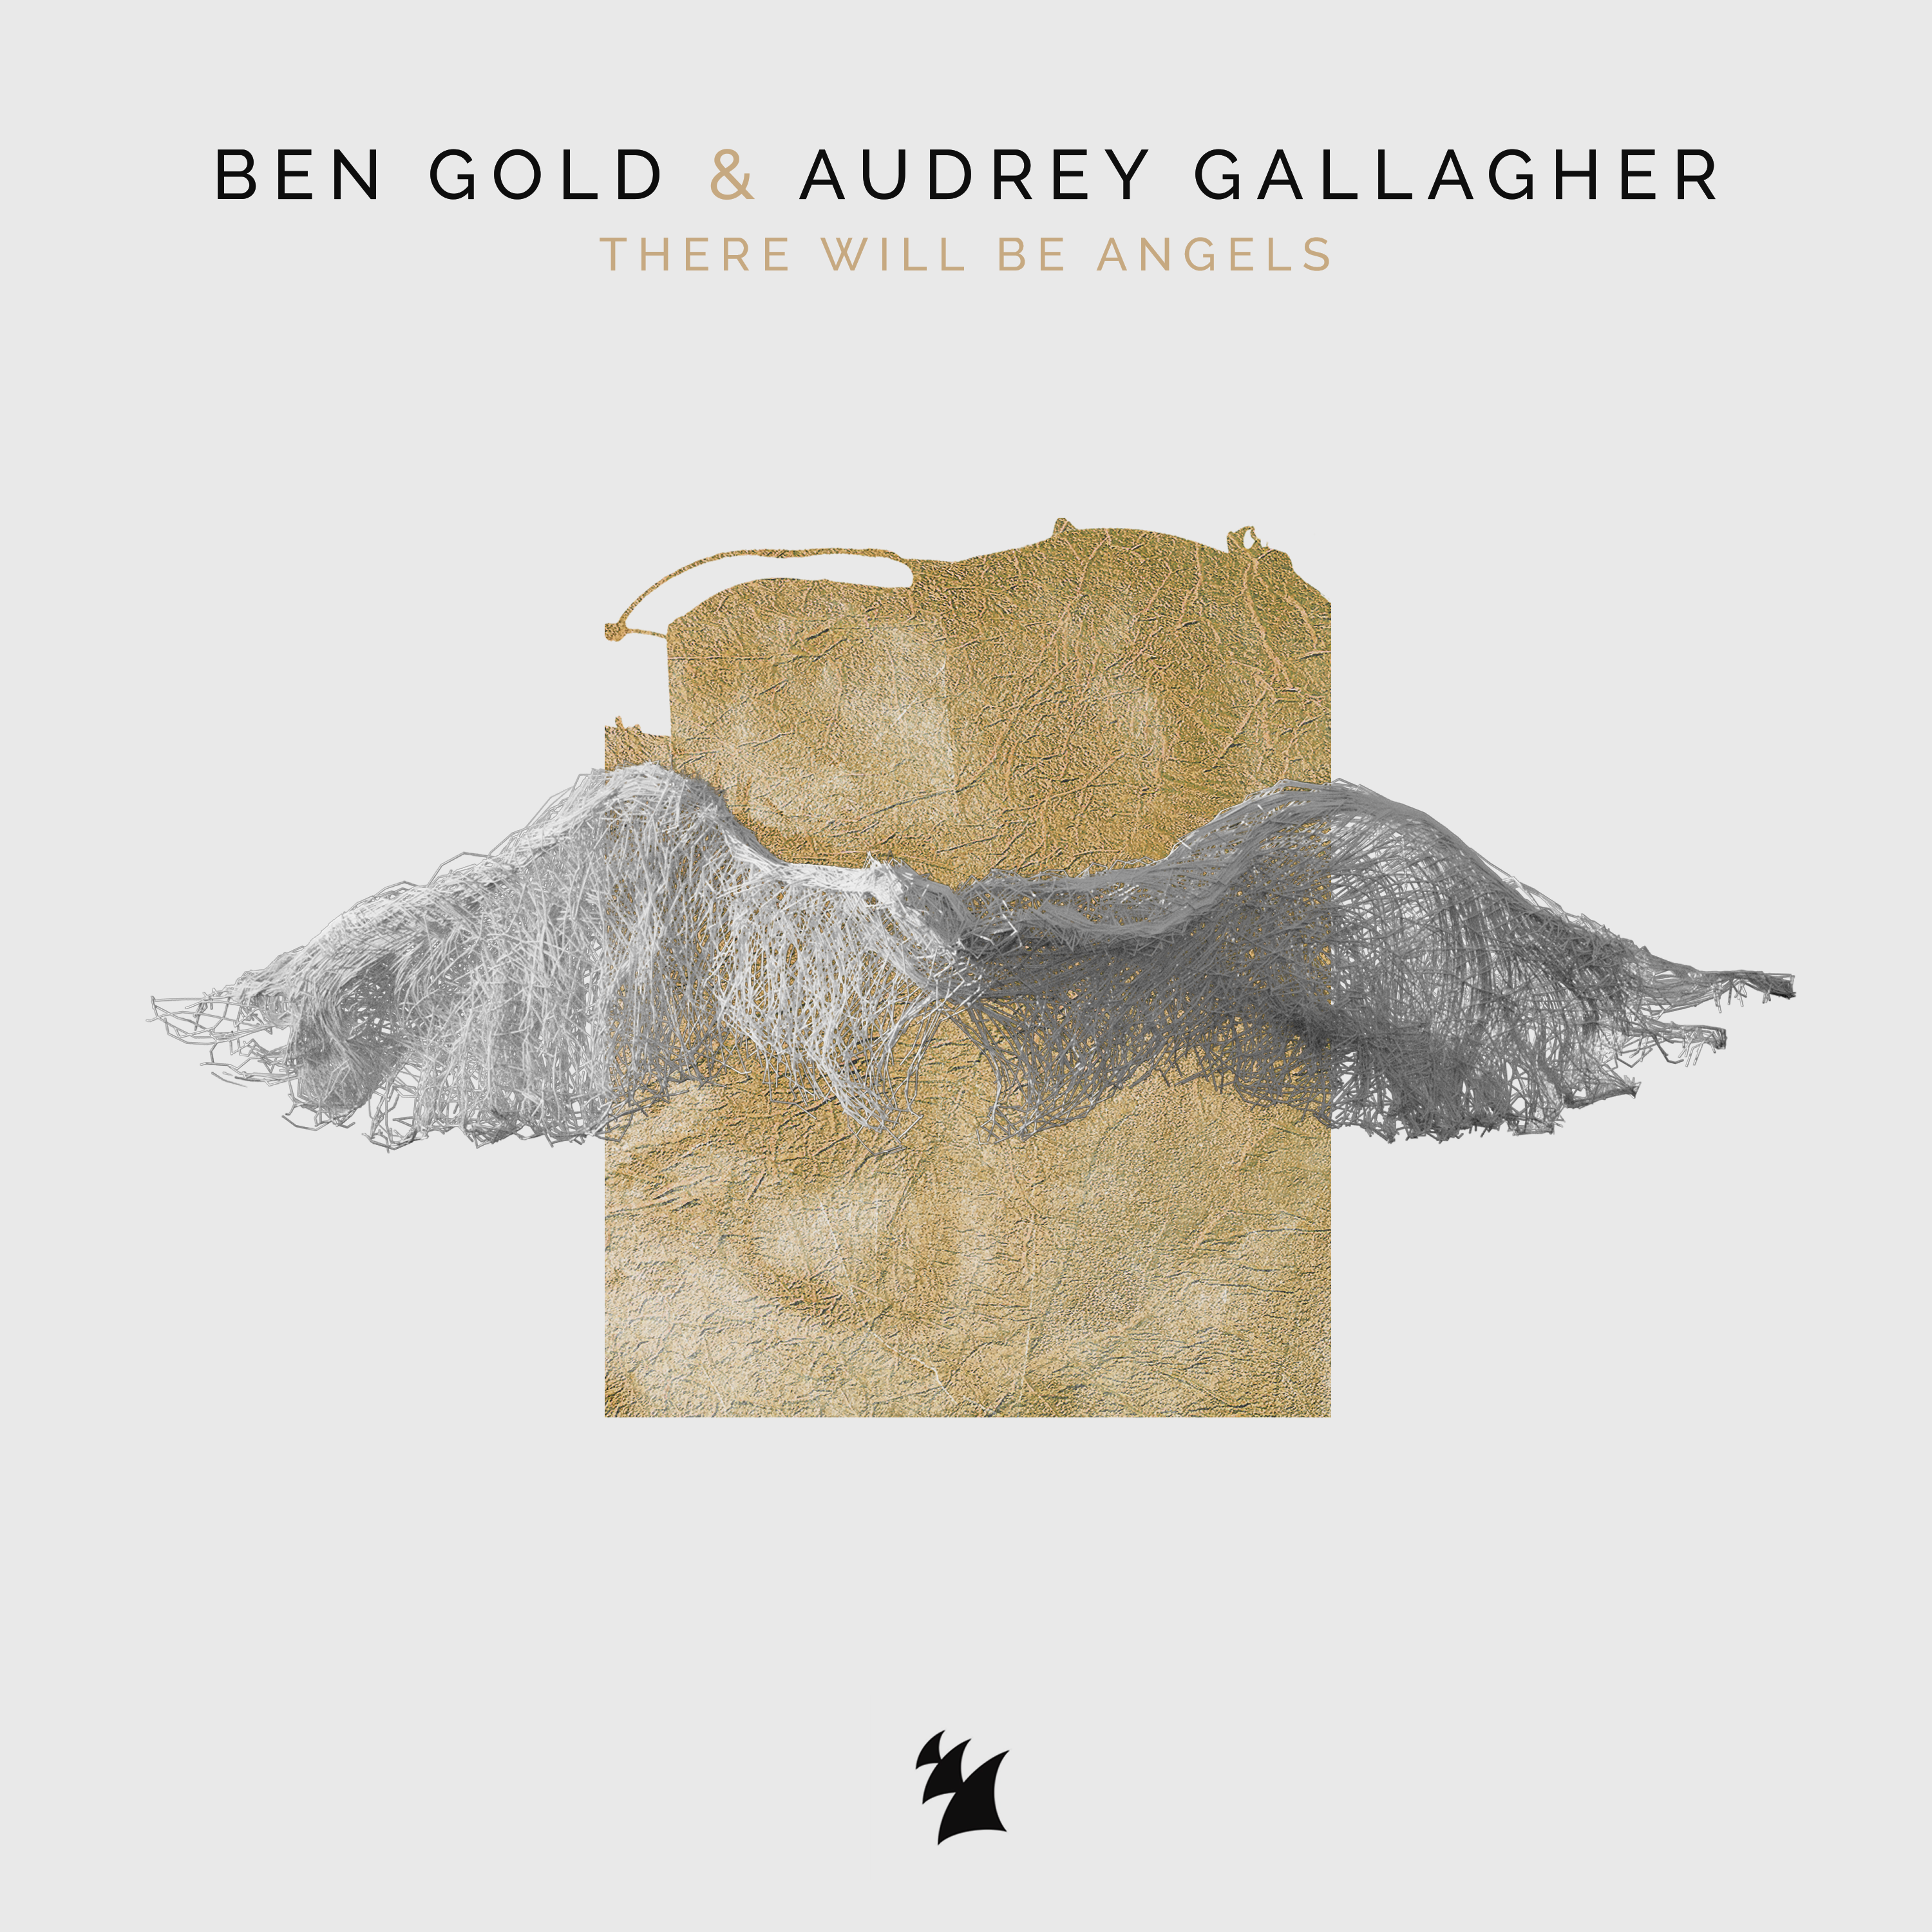 BEN GOLD & AUDREY GALLAGHER THERE WILL BE ANGELS COVER ART